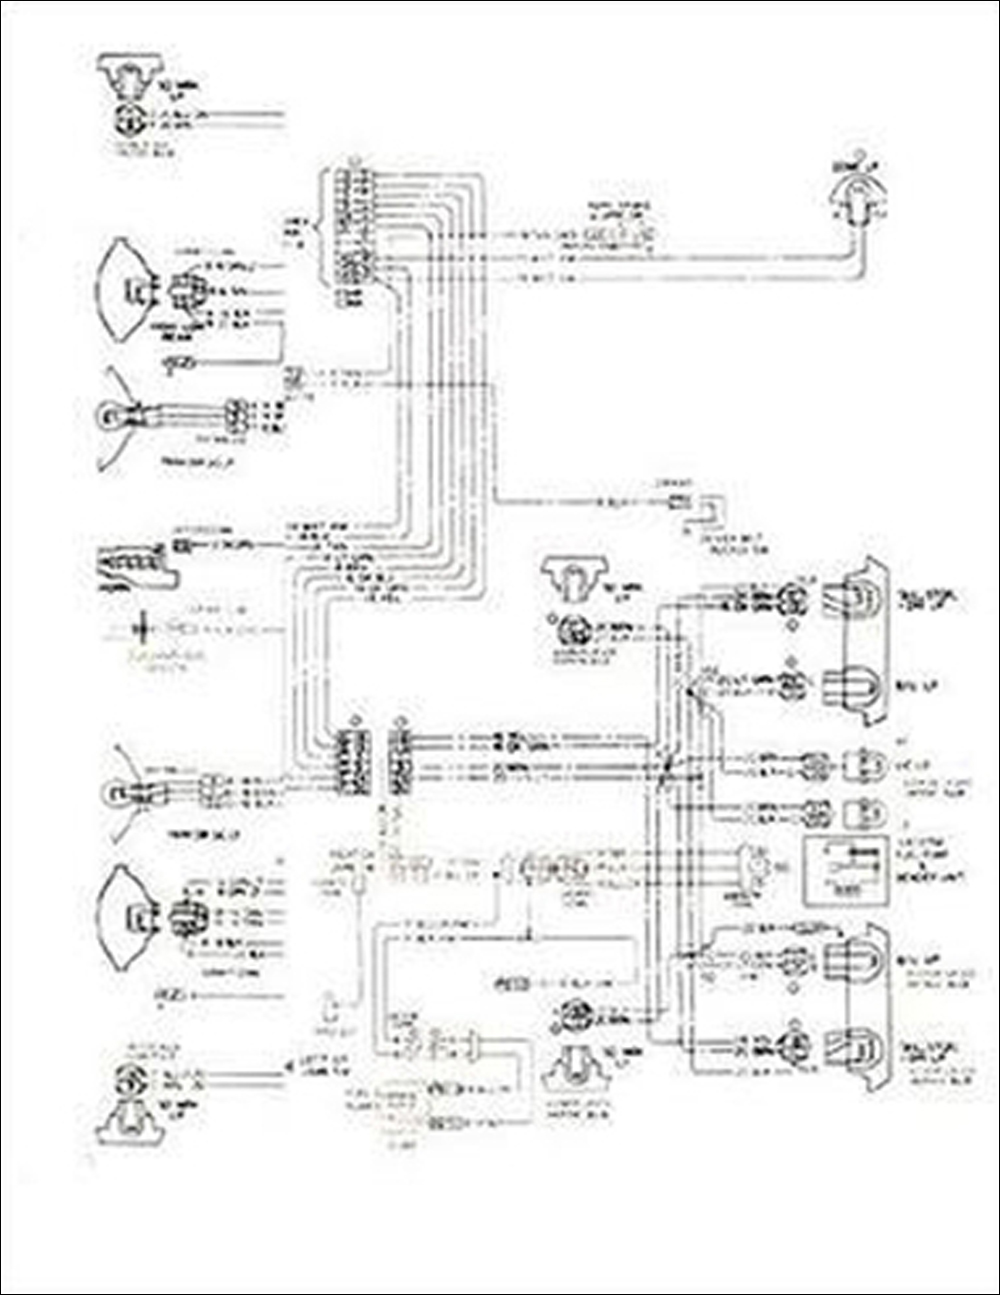 1977 Camaro Wiring Diagram Another Blog About 79 Trans Am 403 Engine Foldout Original Lt Rs And Z28 Rh Faxonautoliterature Com